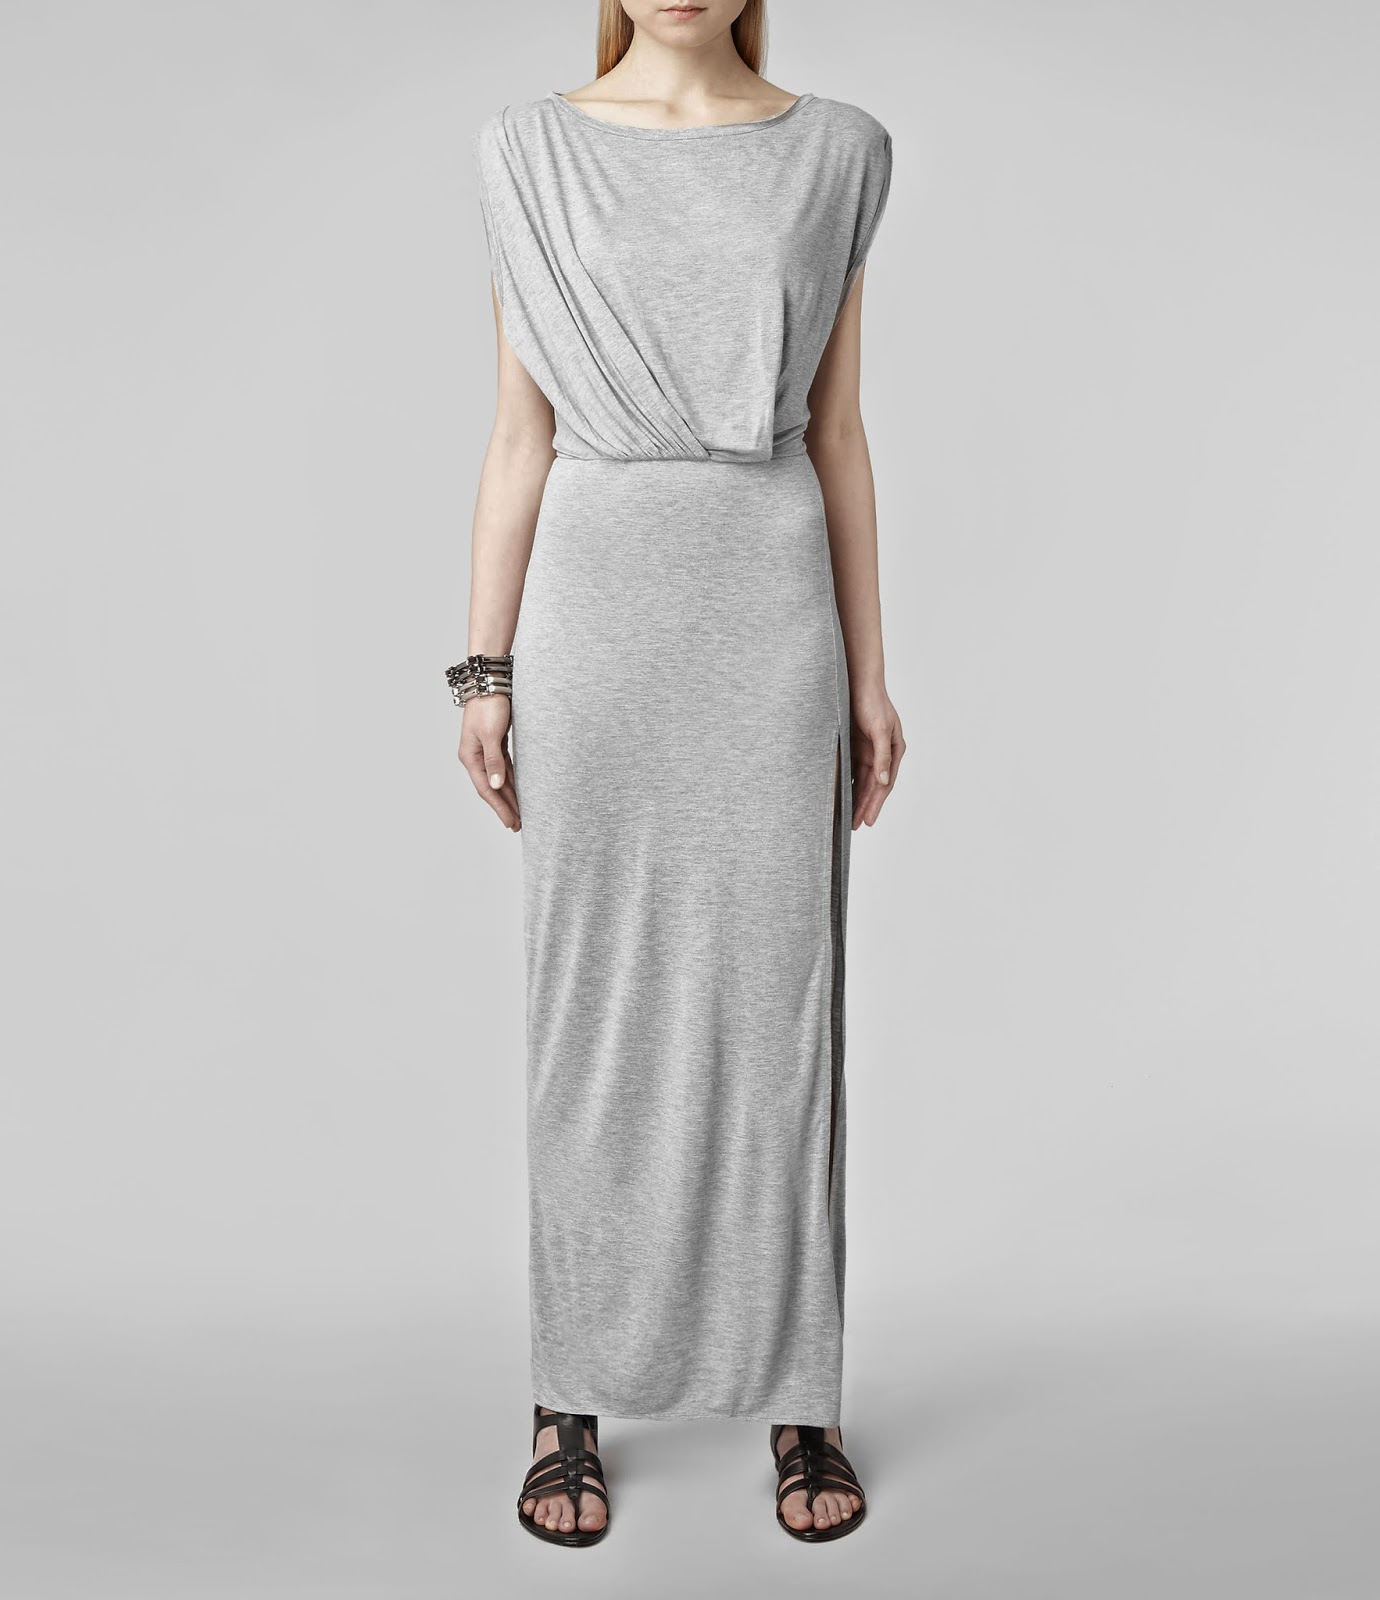 all saints grey dress